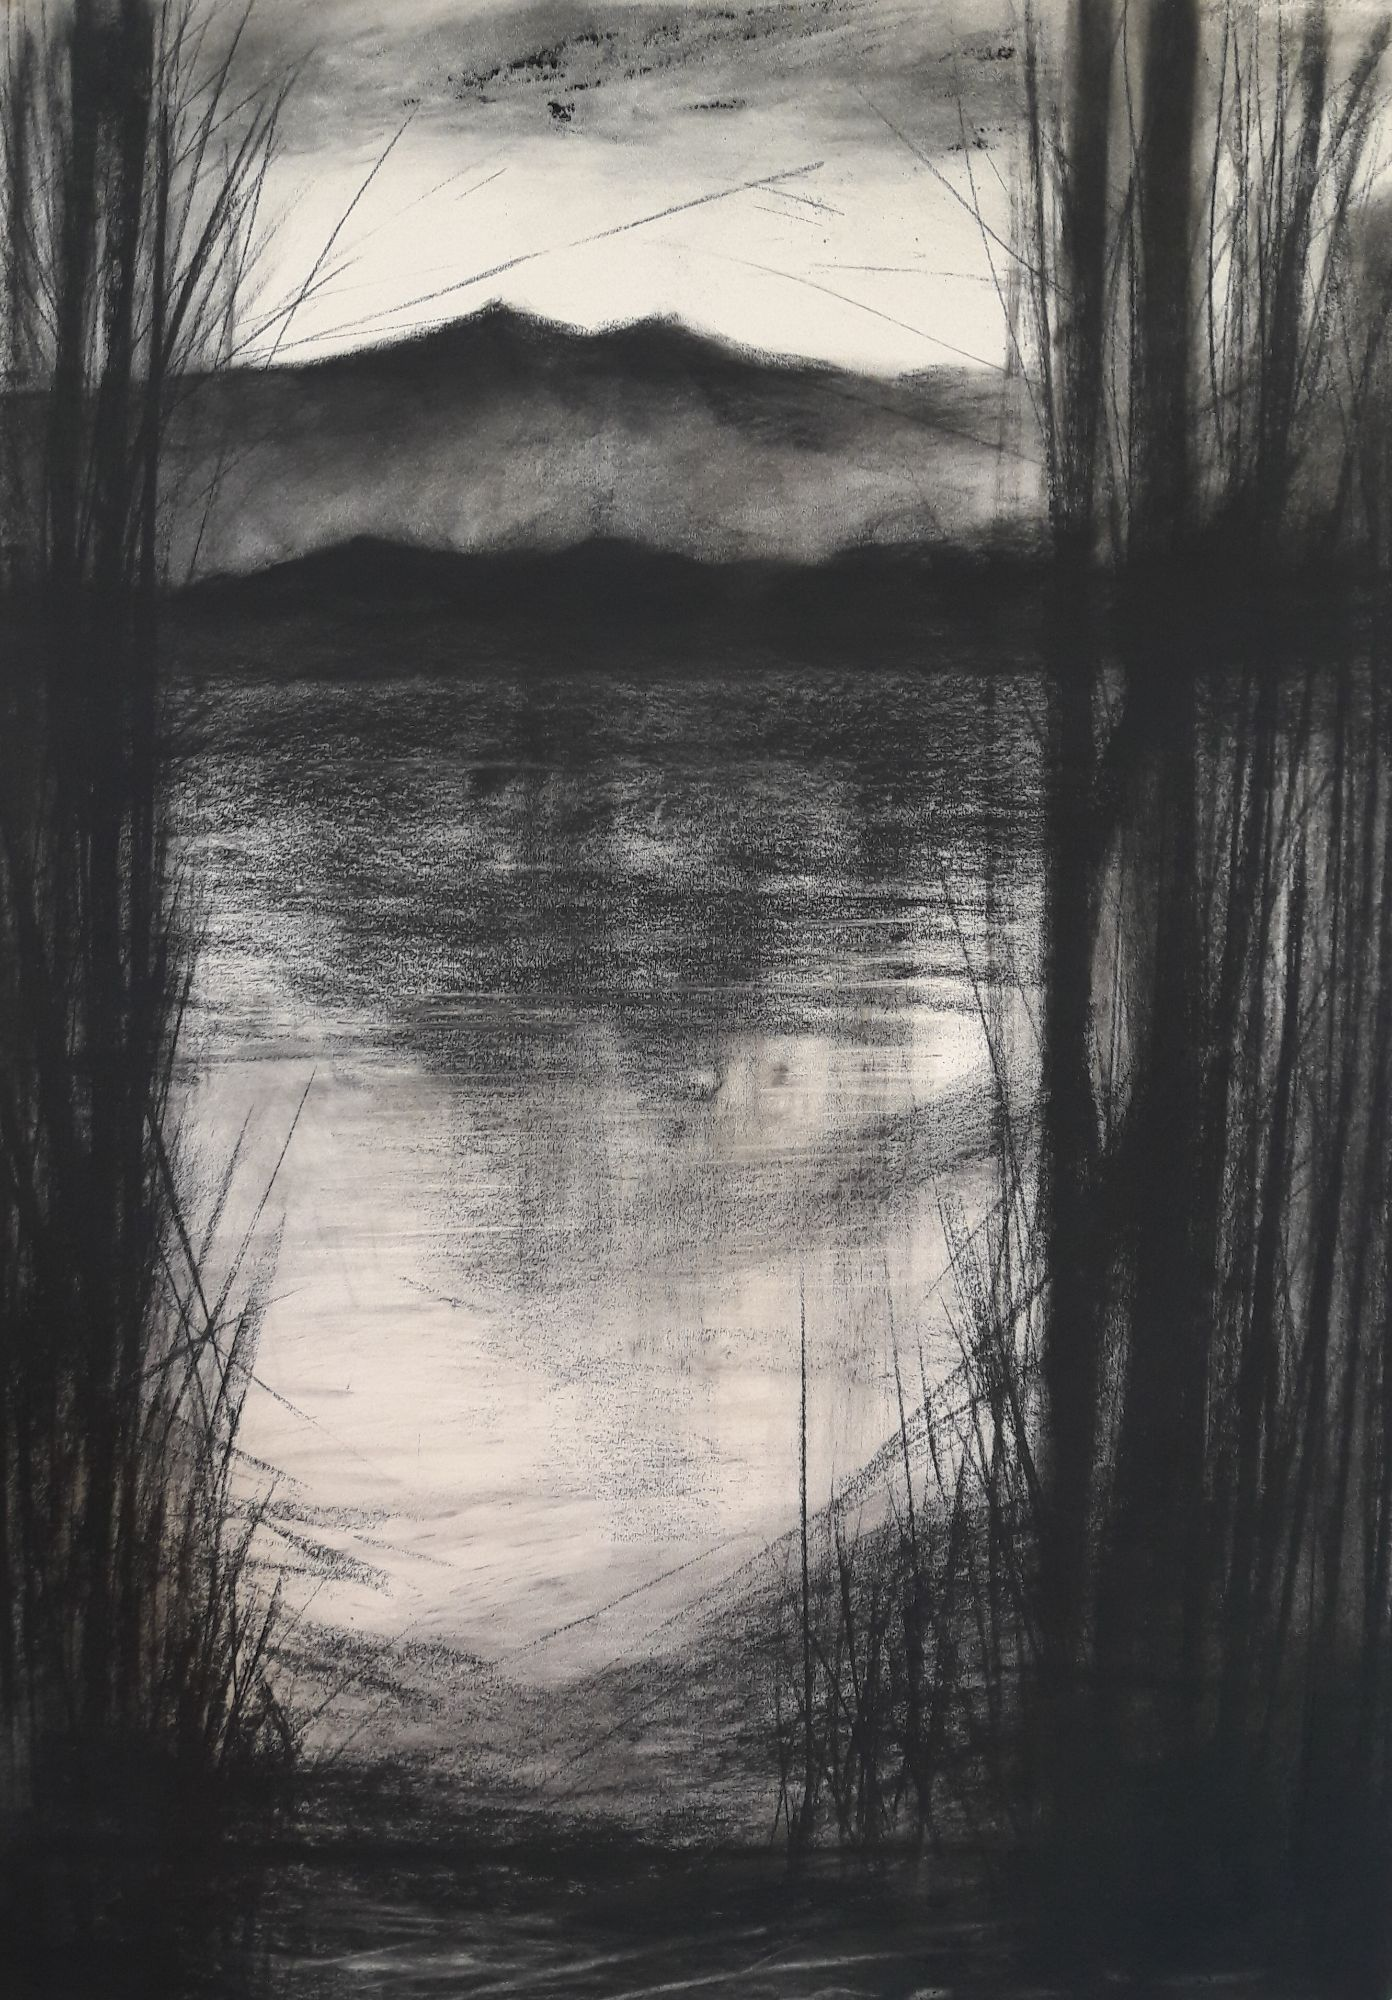 Rydal Water #2 - Charcoal on cartridge paper (594 X 841 MM)